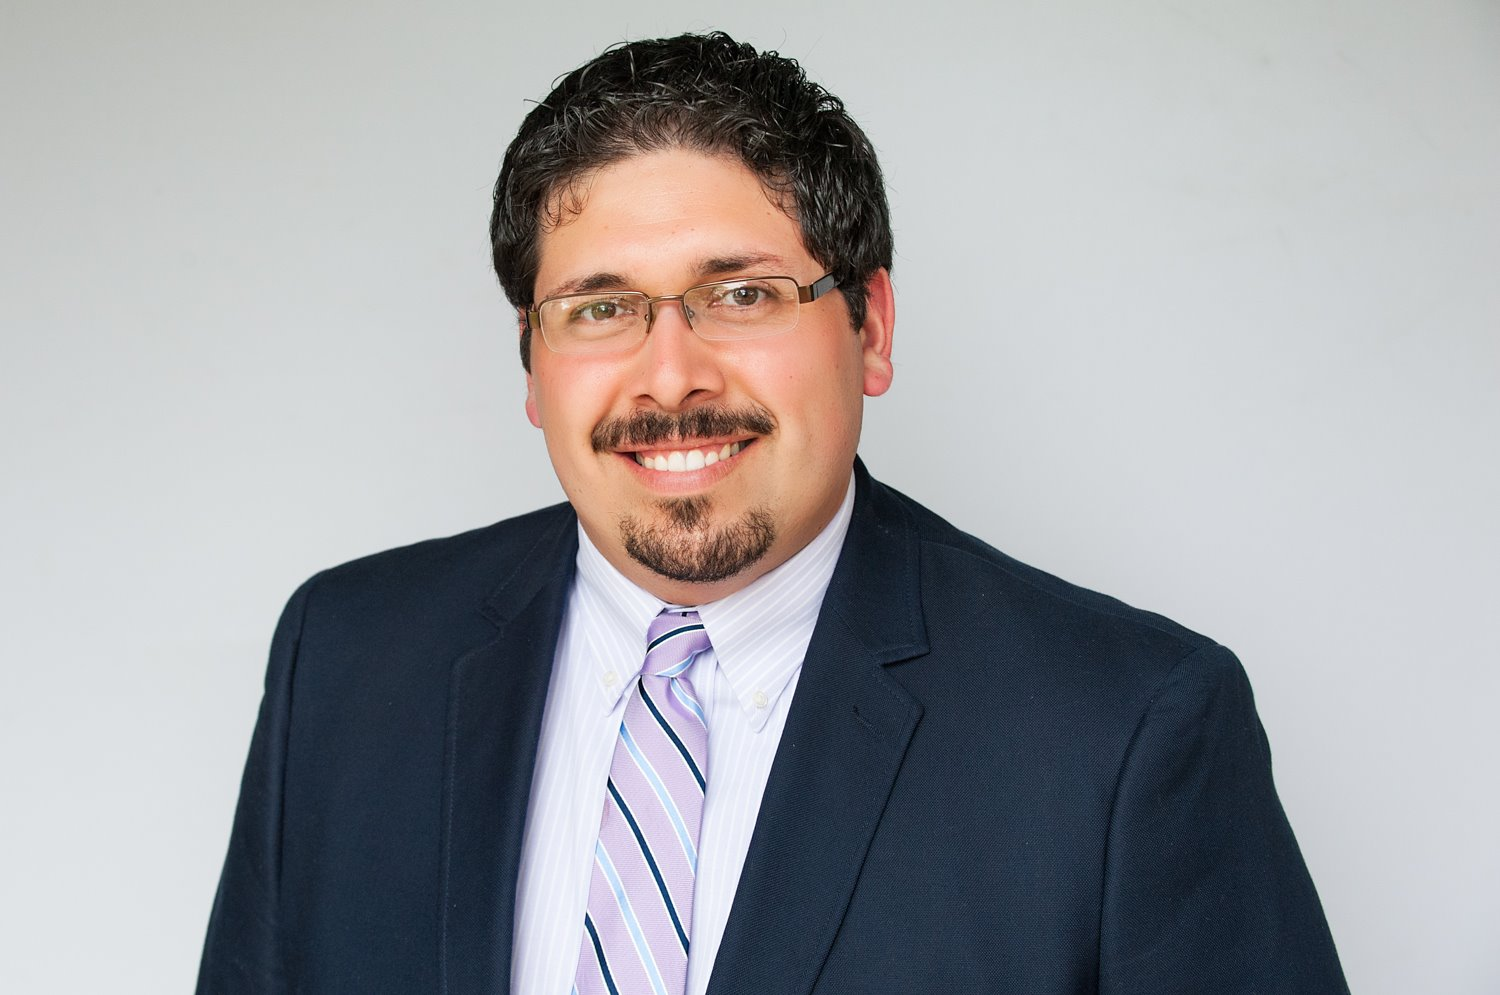 NEW DIRECTOR OF AMD ANNOUNCED